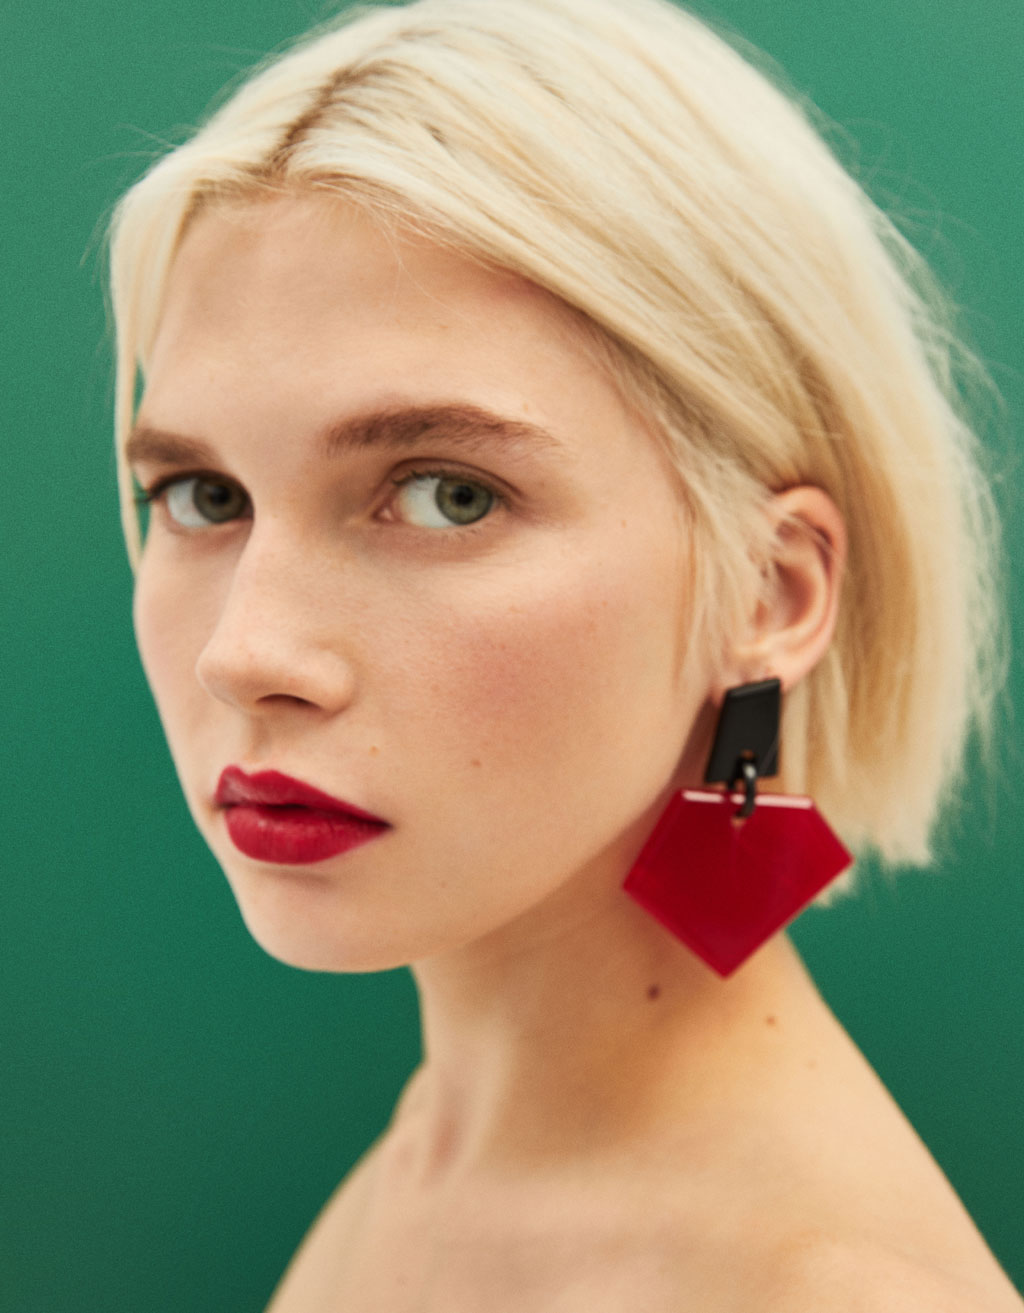 Contrast earrings